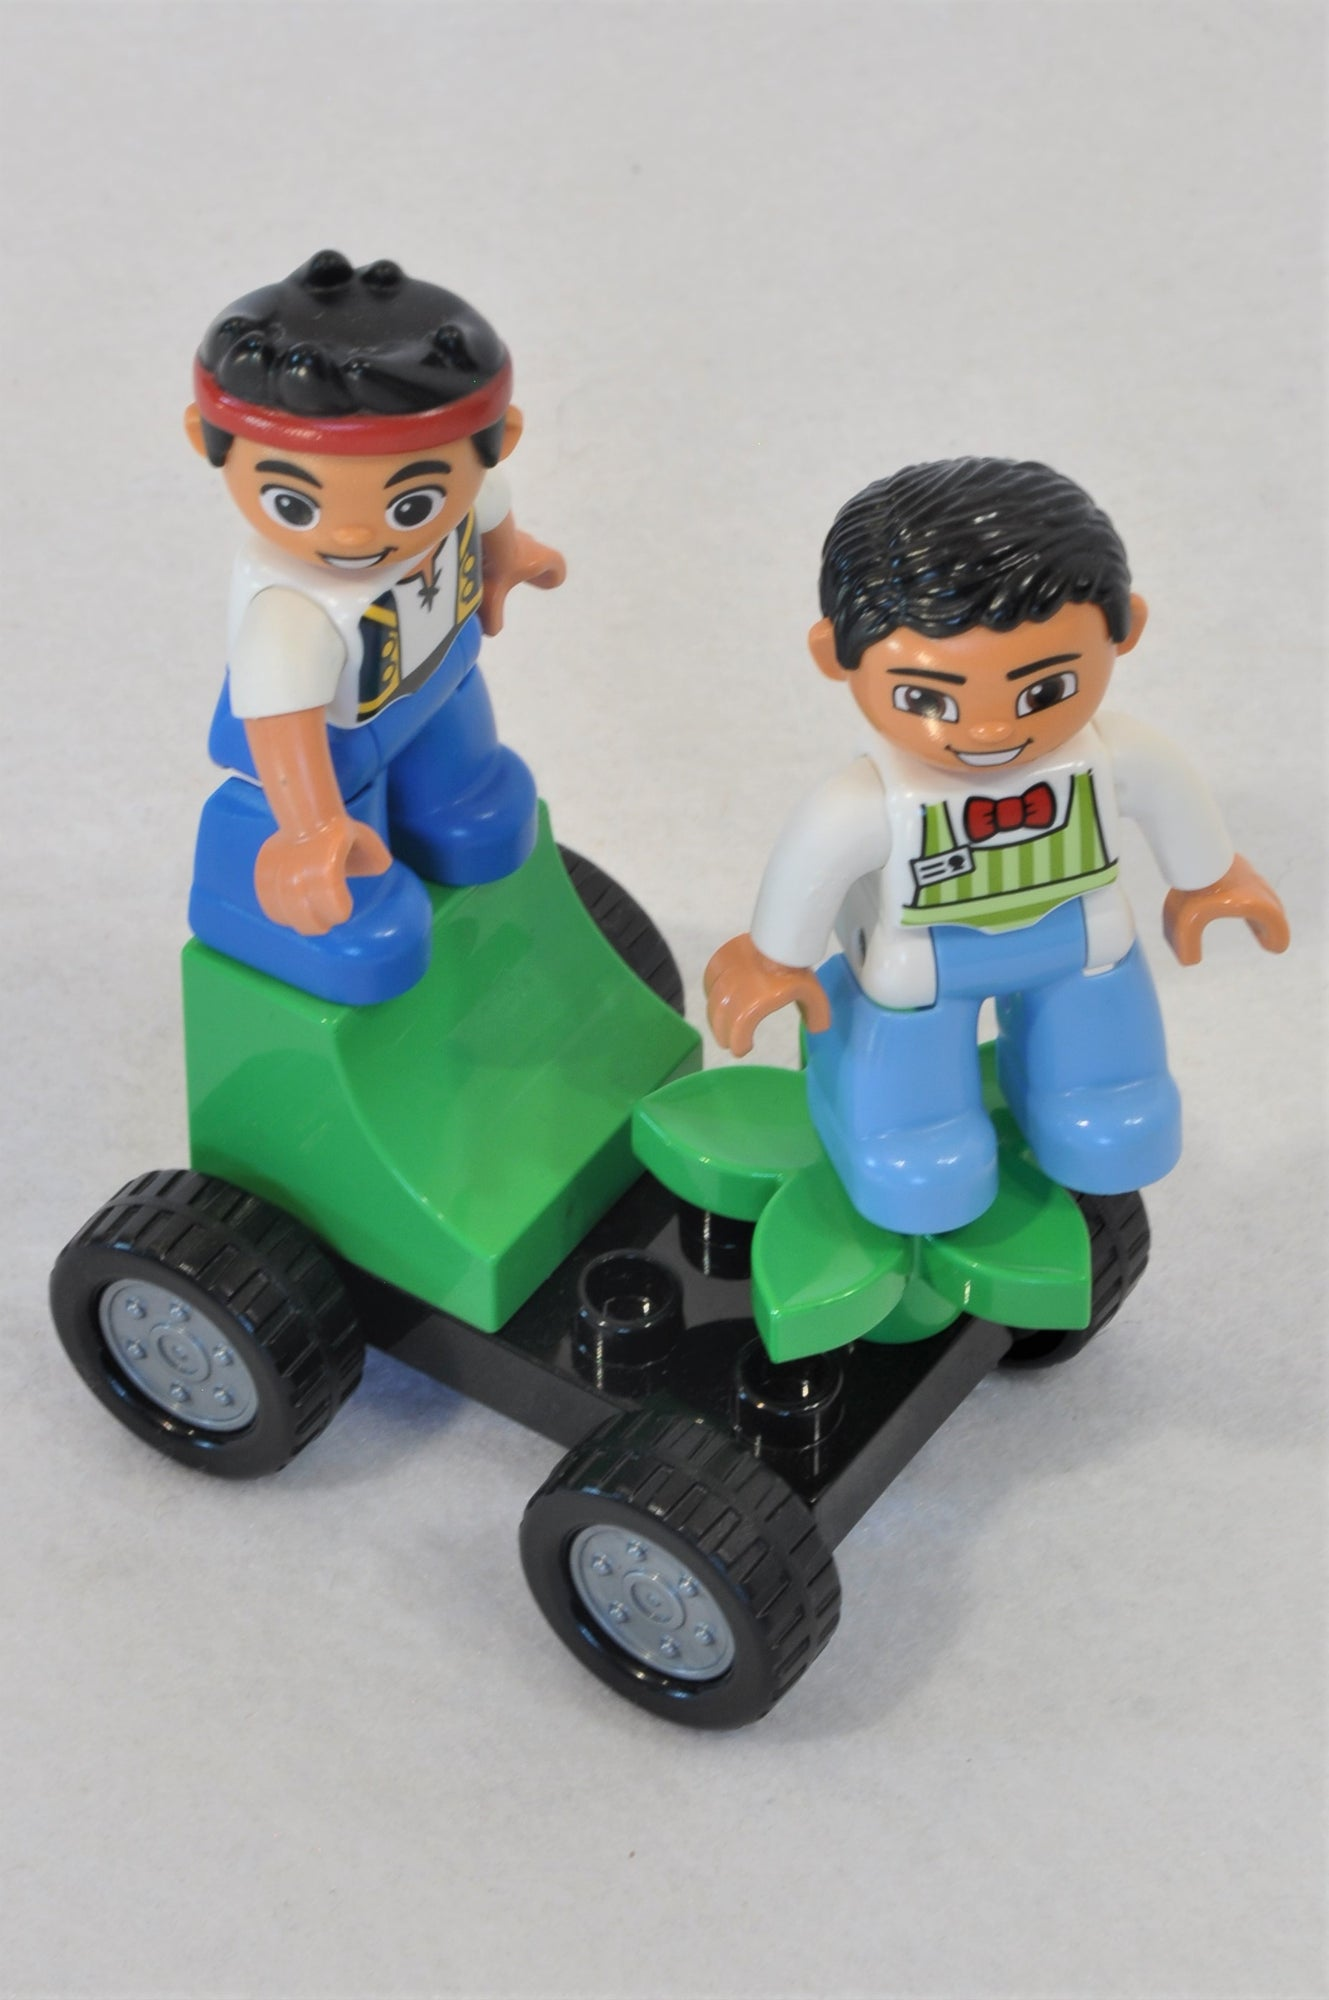 Unbranded Green Car Pirate Lego Toy Unisex 2-6 years